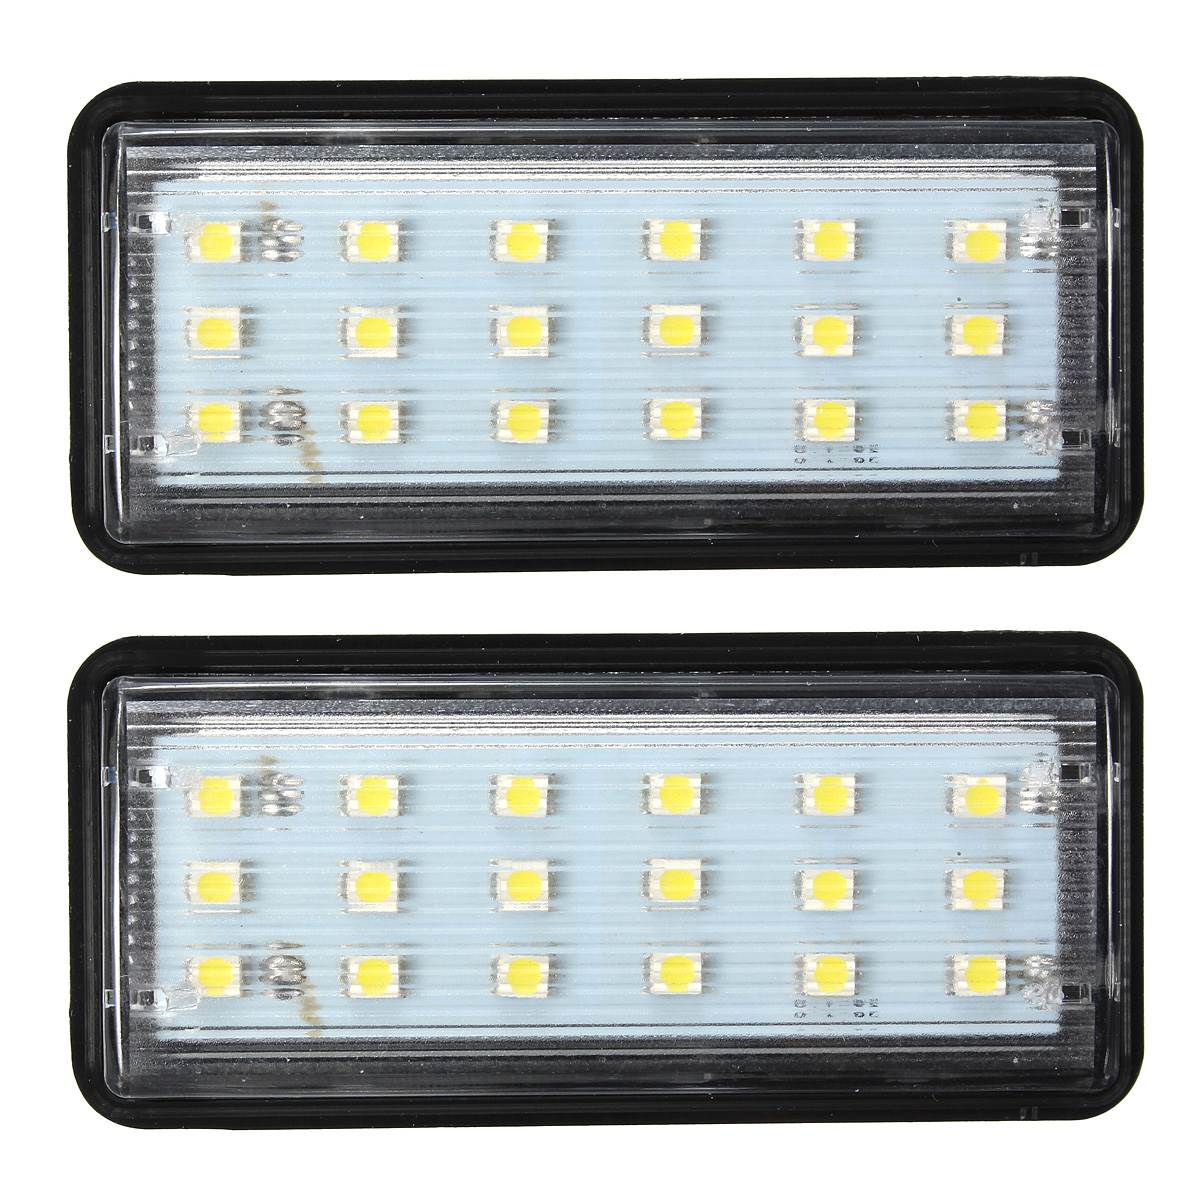 2x LED SMD3528 License Plate Light Number Plate Lamp For Toyota/Land/Cruiser/Lexus/GX/LX470 Error Free 2pcs error free led smd license plate light for toyota land cruiser lexus gx lx470 new dropping shipping